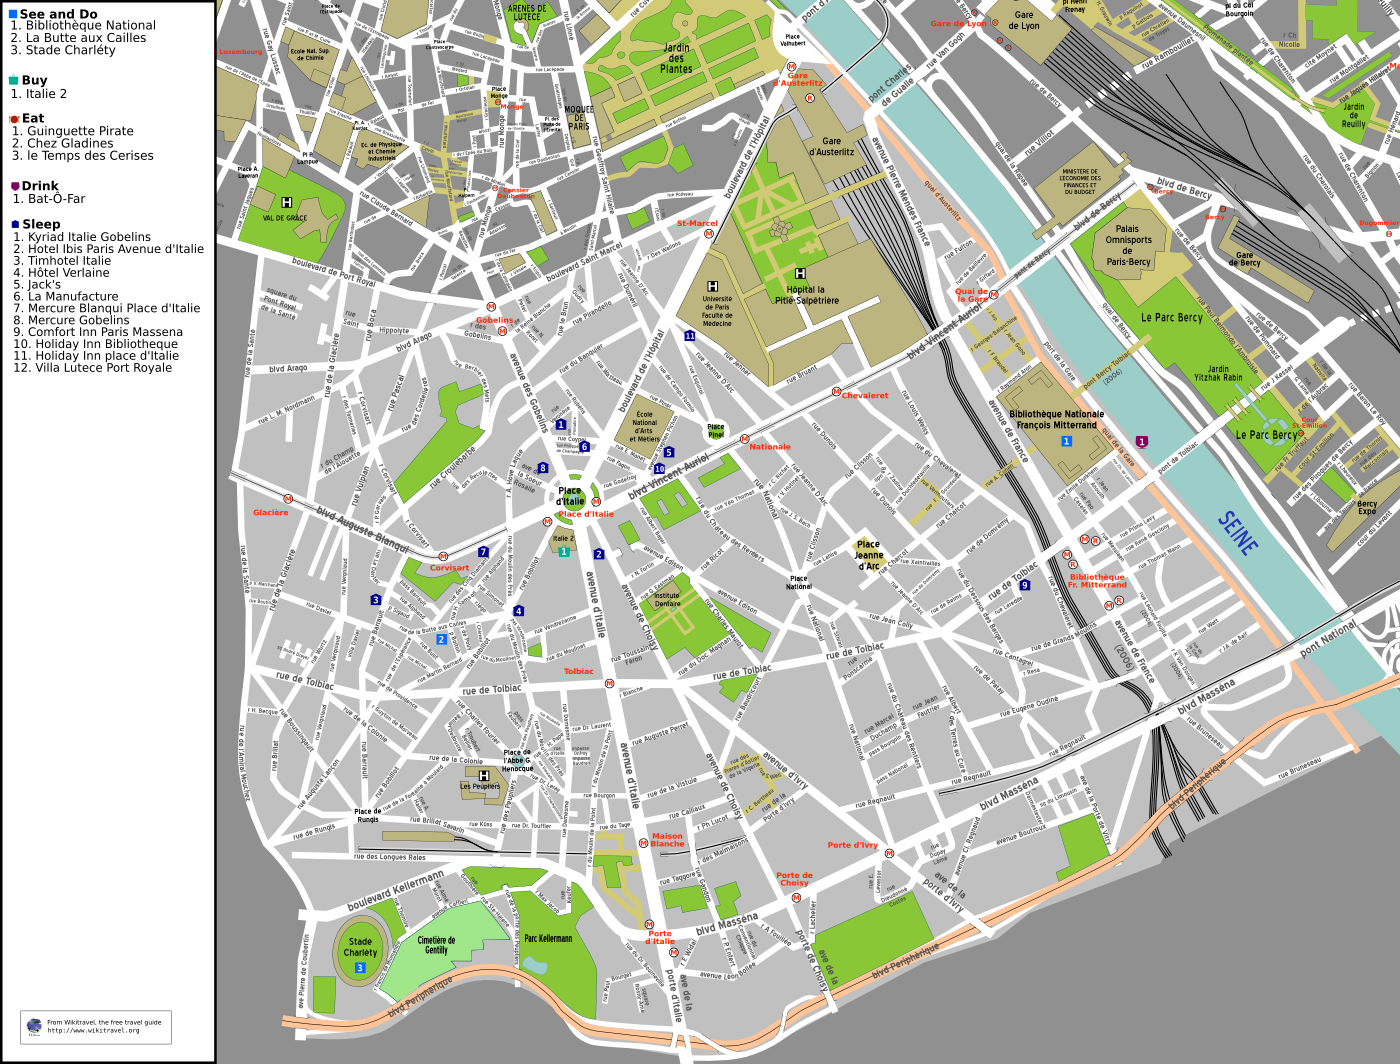 Liste des voies du 13e arrondissement de paris wikip dia for Bureau de change 13 arrondissement